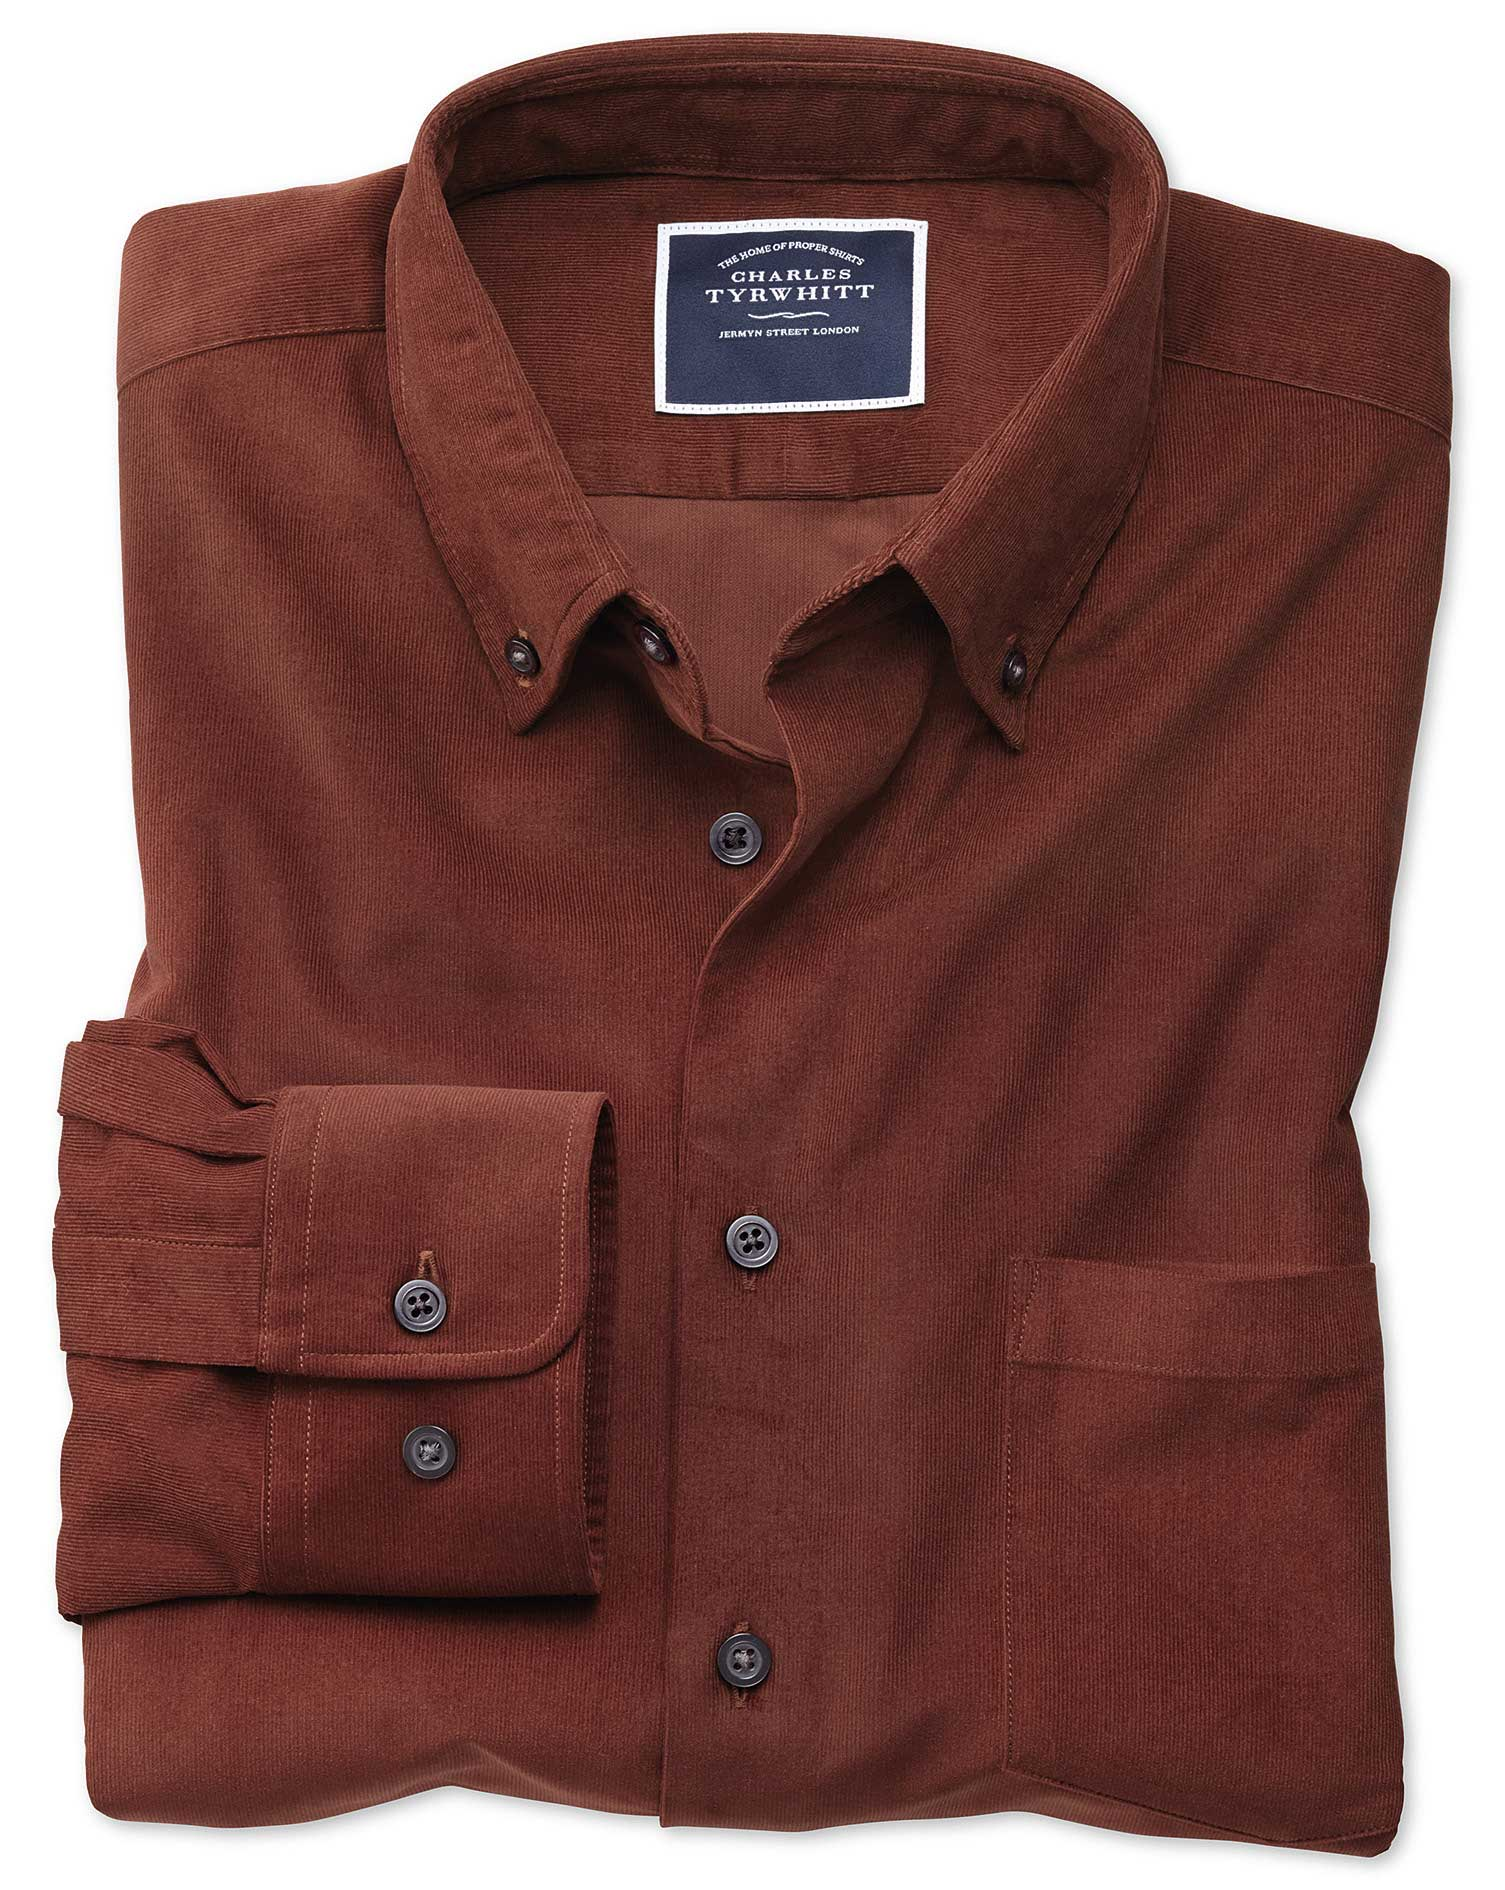 Classic Fit Plain Rust Fine Corduroy Cotton Shirt Single Cuff Size Small by Charles Tyrwhitt from Charles Tyrwhitt